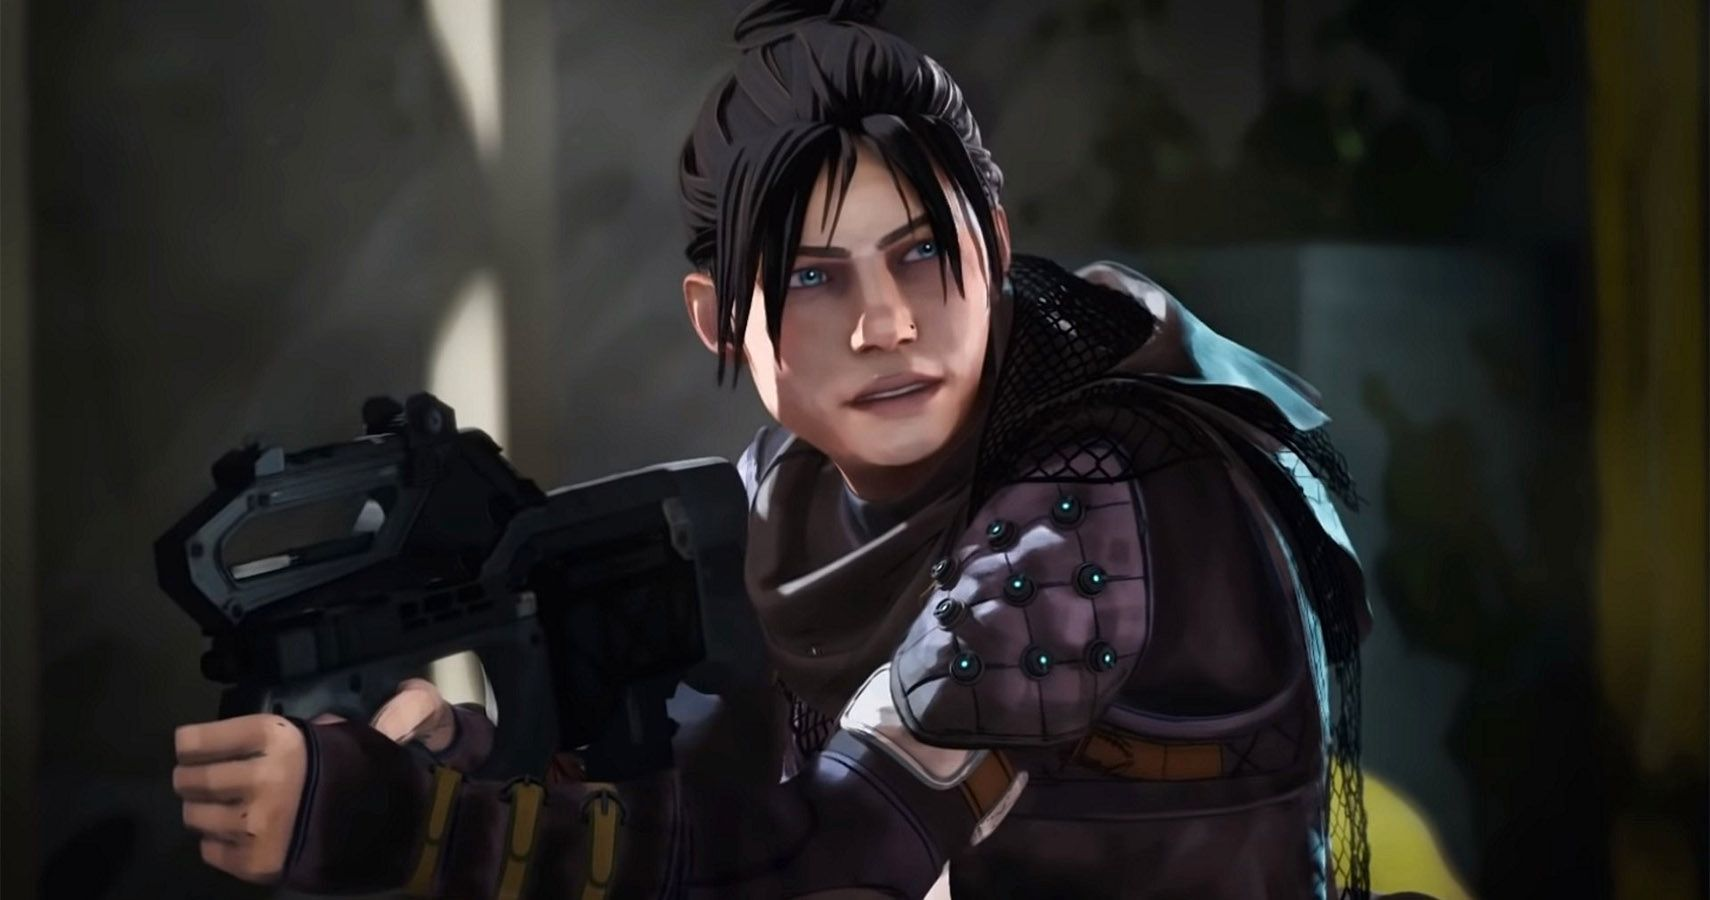 Wraith may finally be a little more balance in Apex Legends after the Lost Treasures update.